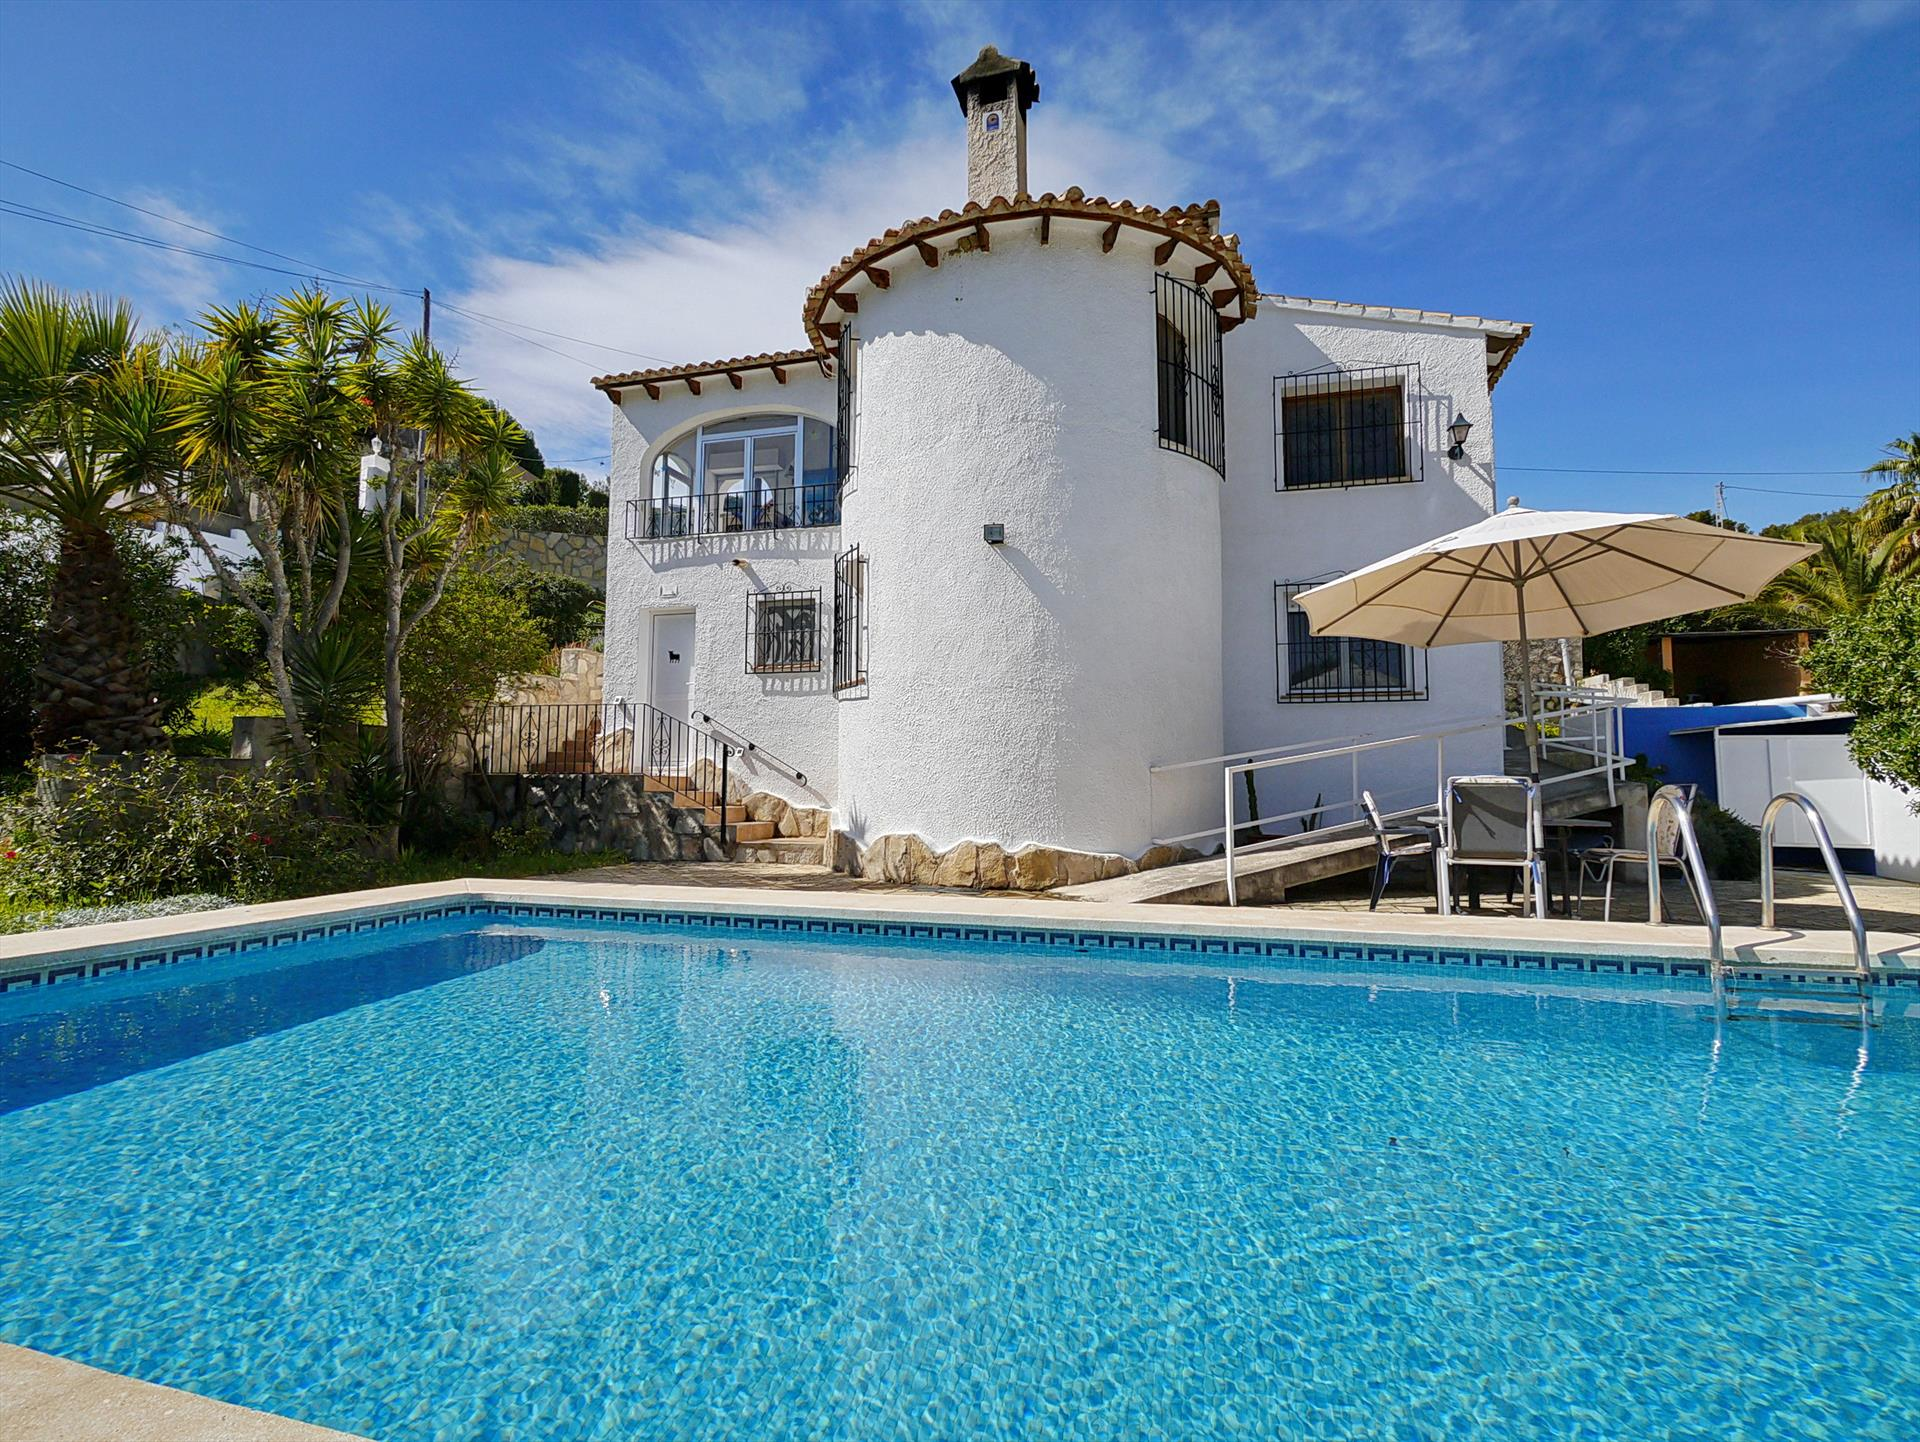 Juliane, Wonderful and cheerful villa in Benissa, on the Costa Blanca, Spain  with private pool for 6 persons.....